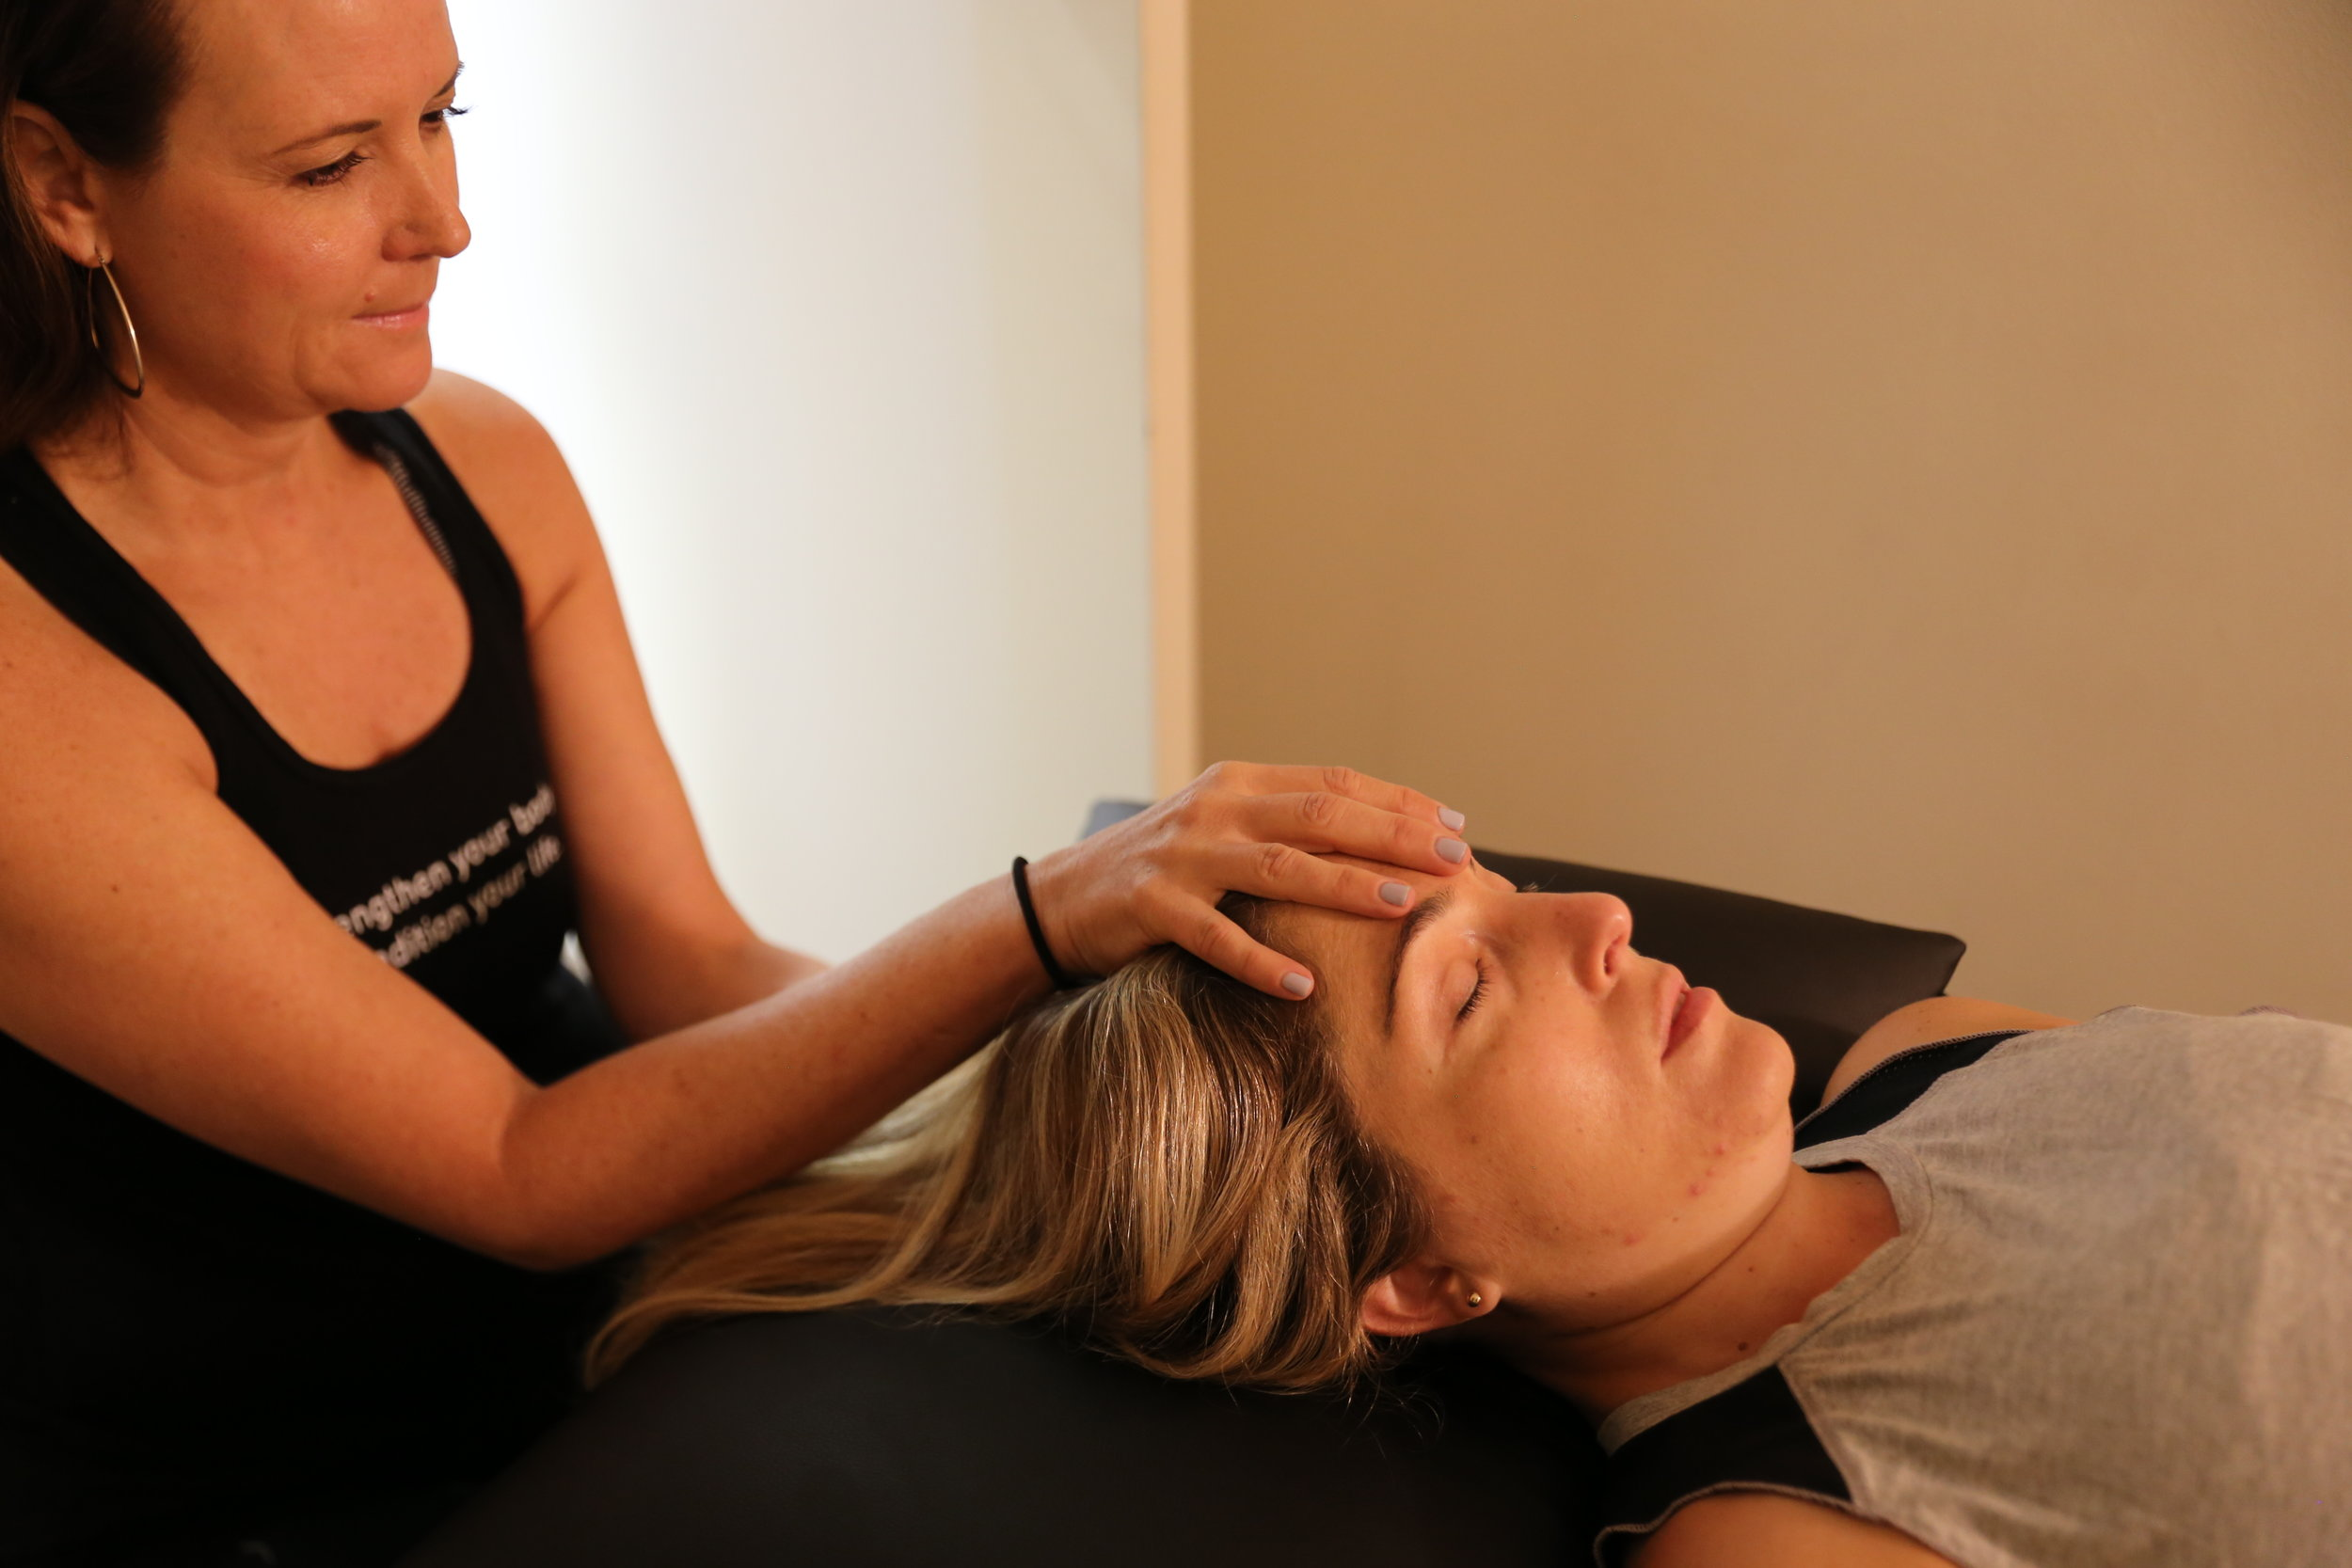 CRANIOSACRAL/ VISCERAL THERAPY - Craniosacral Therapy (CST) is a gentle hands-on method of enhancing the functioning of the membranes and fluid that surround the brain and spinal cord.